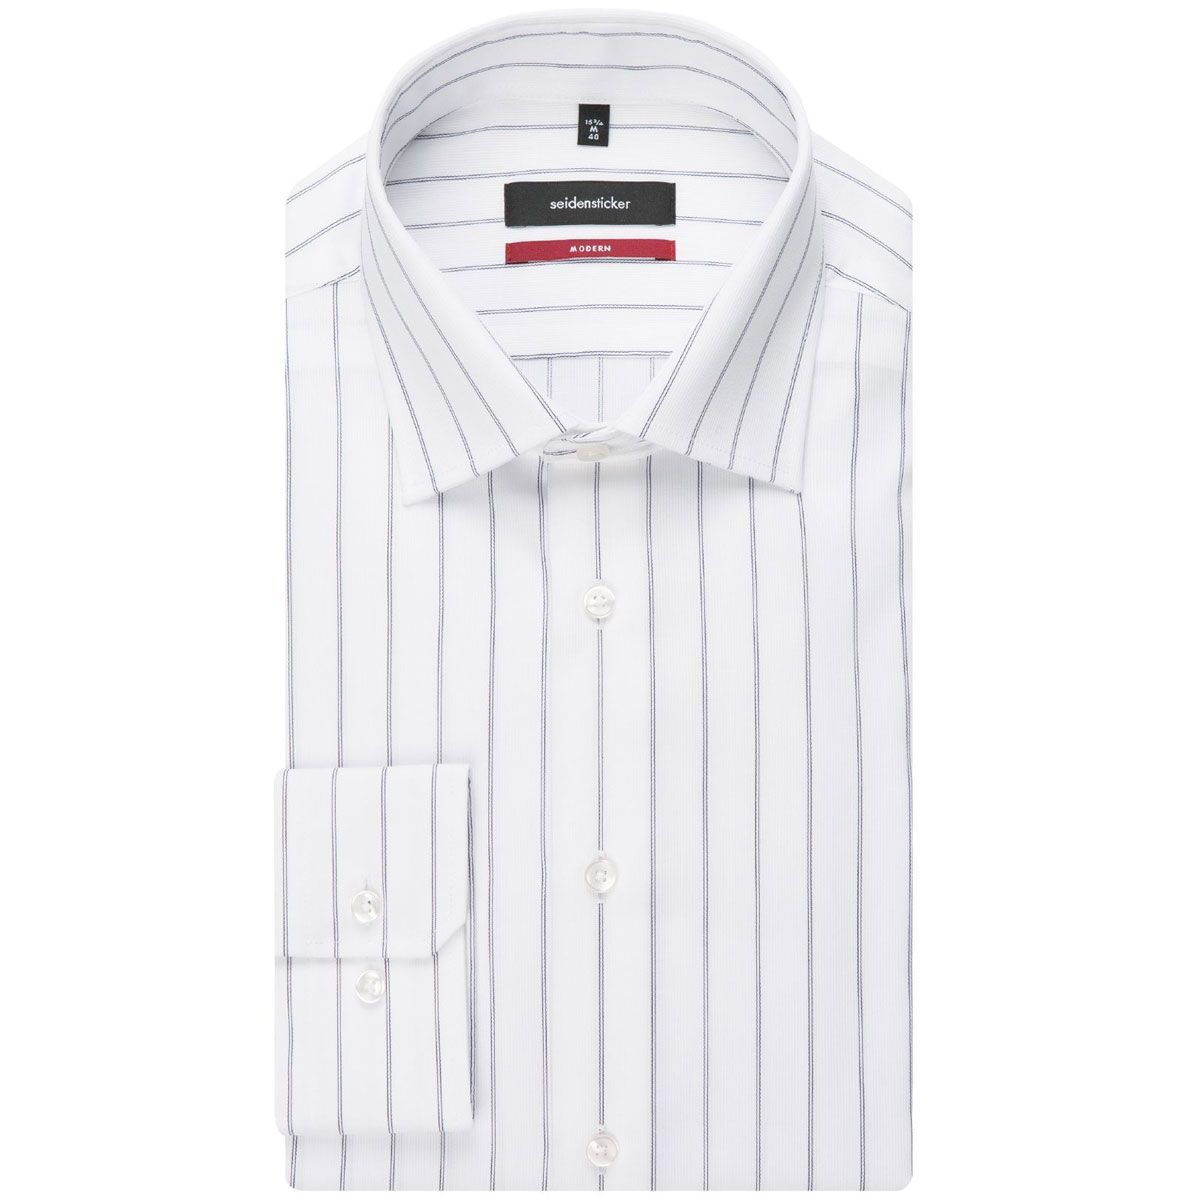 Chemise droite Printed fines rayures espacées